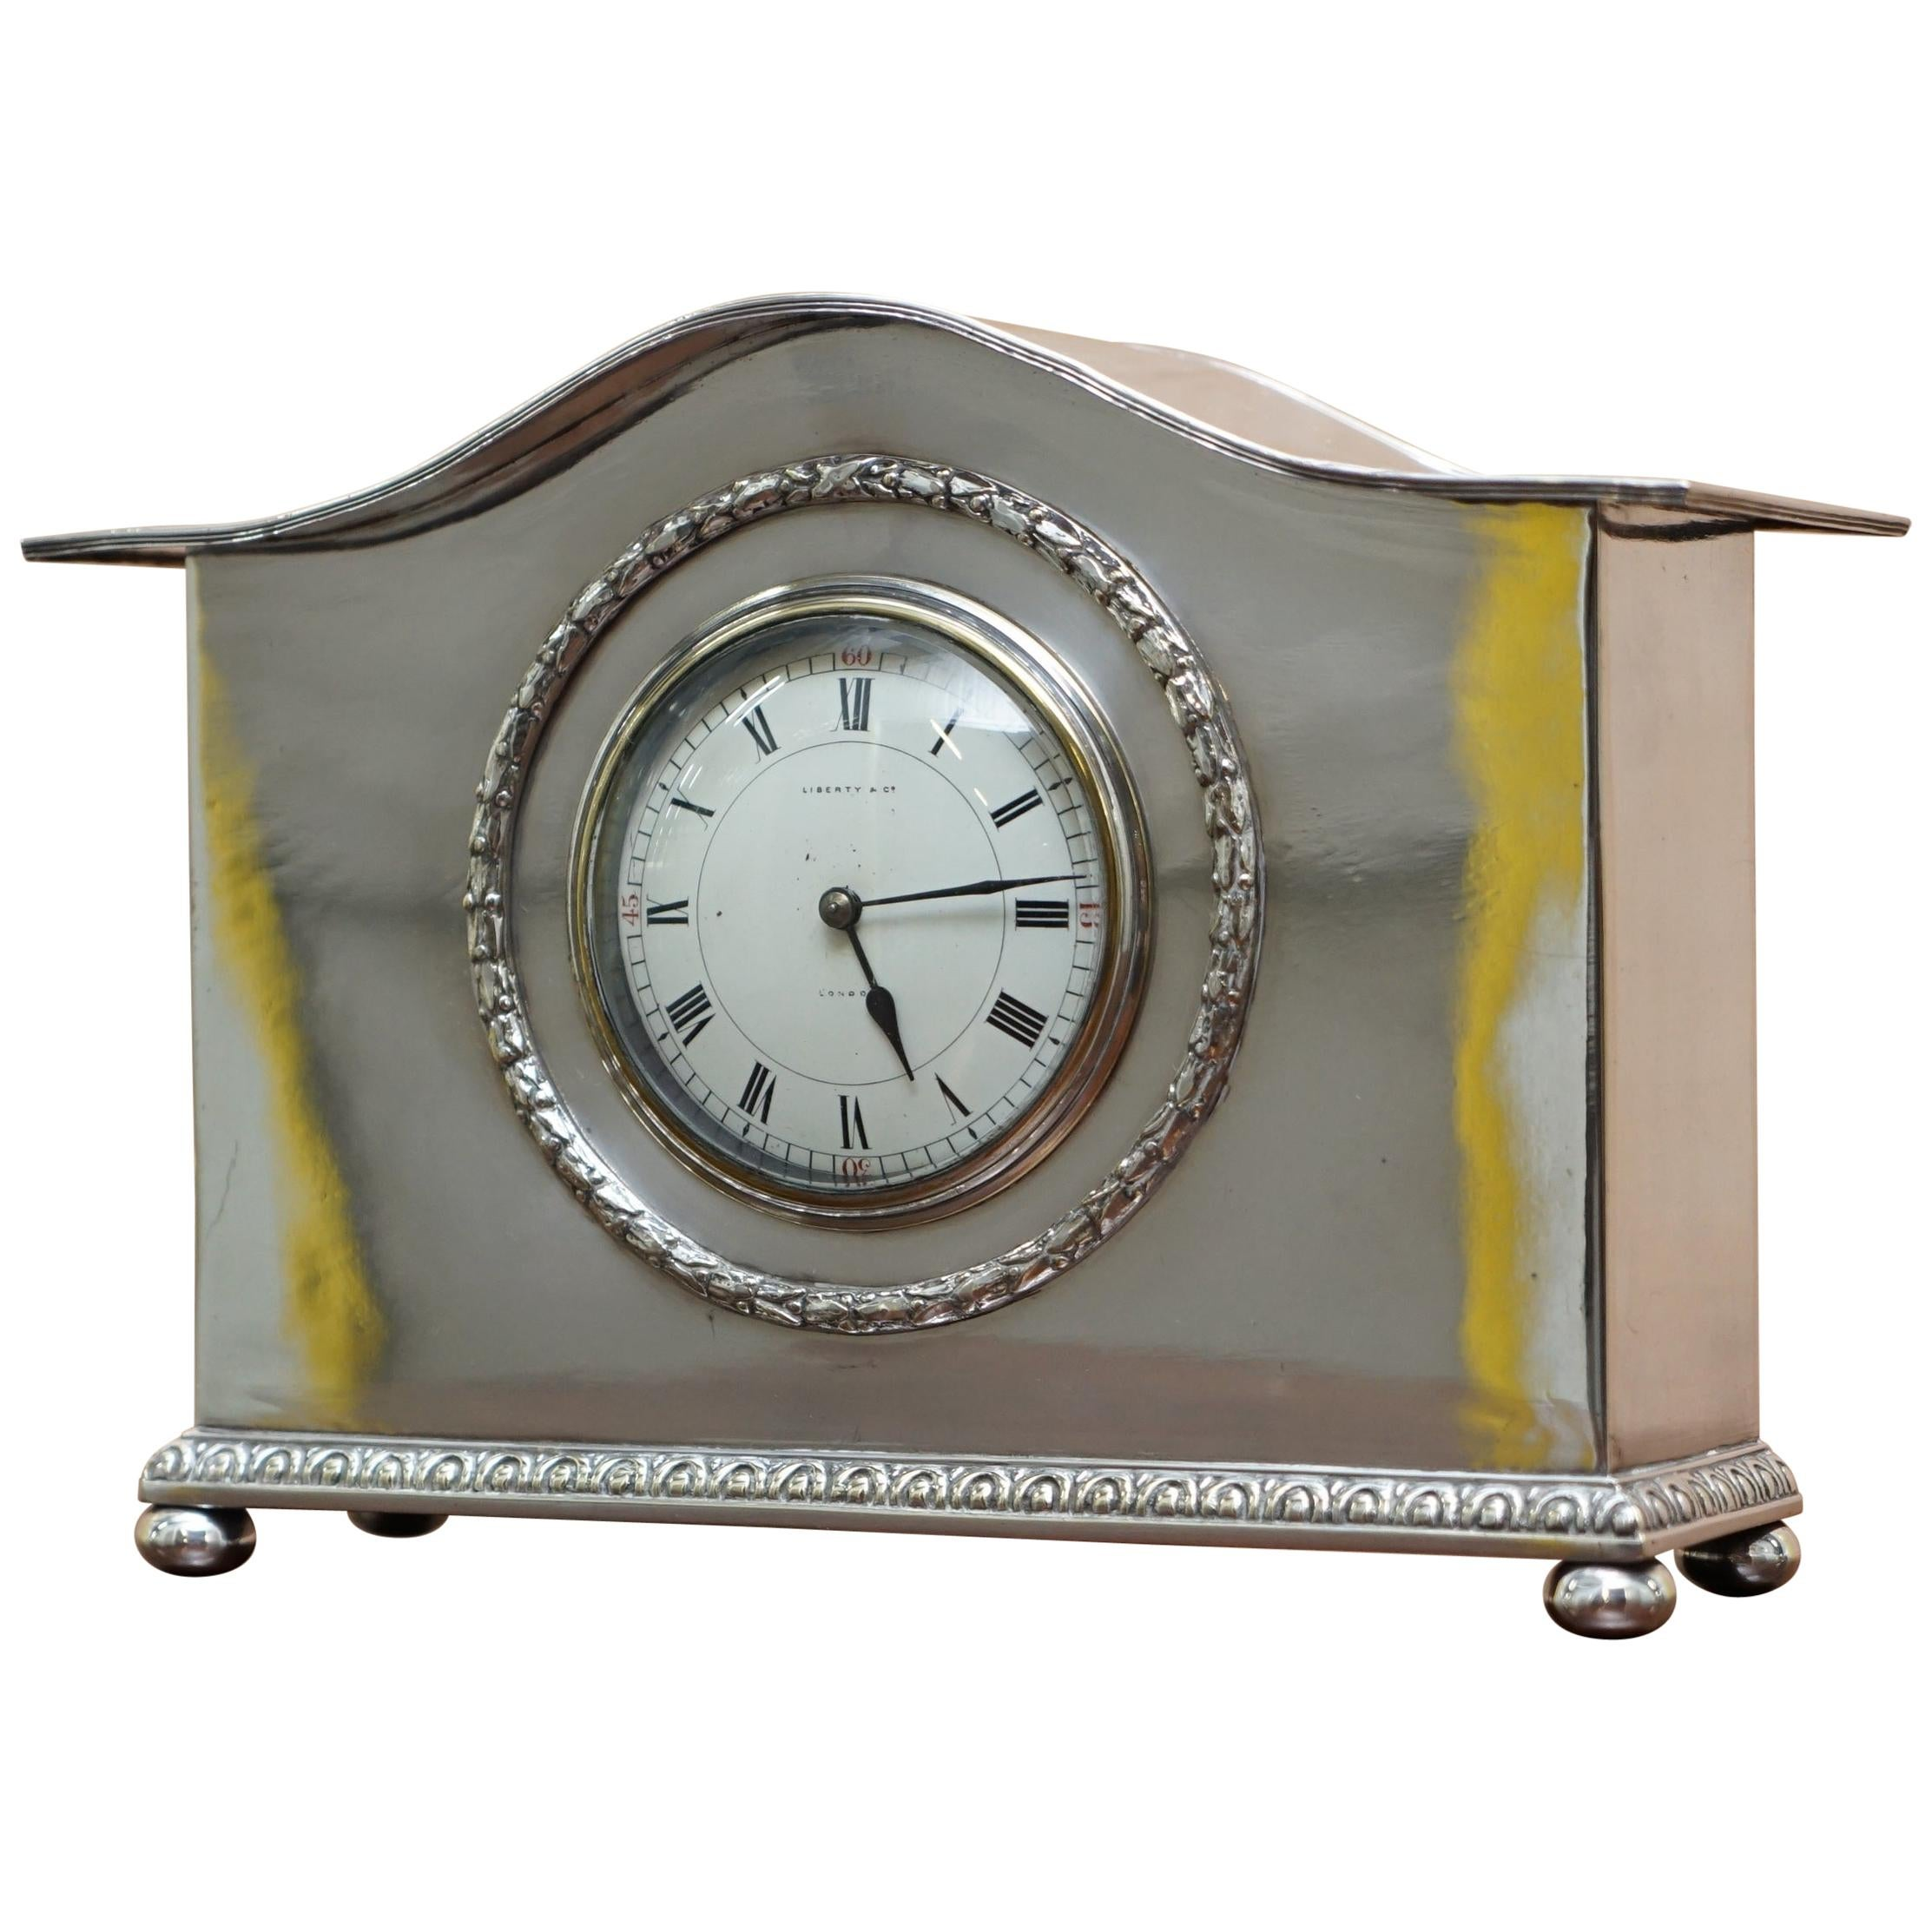 1900 Liberty & Co. London Sterling Silver Plated Archibald Knox Mantle Clock